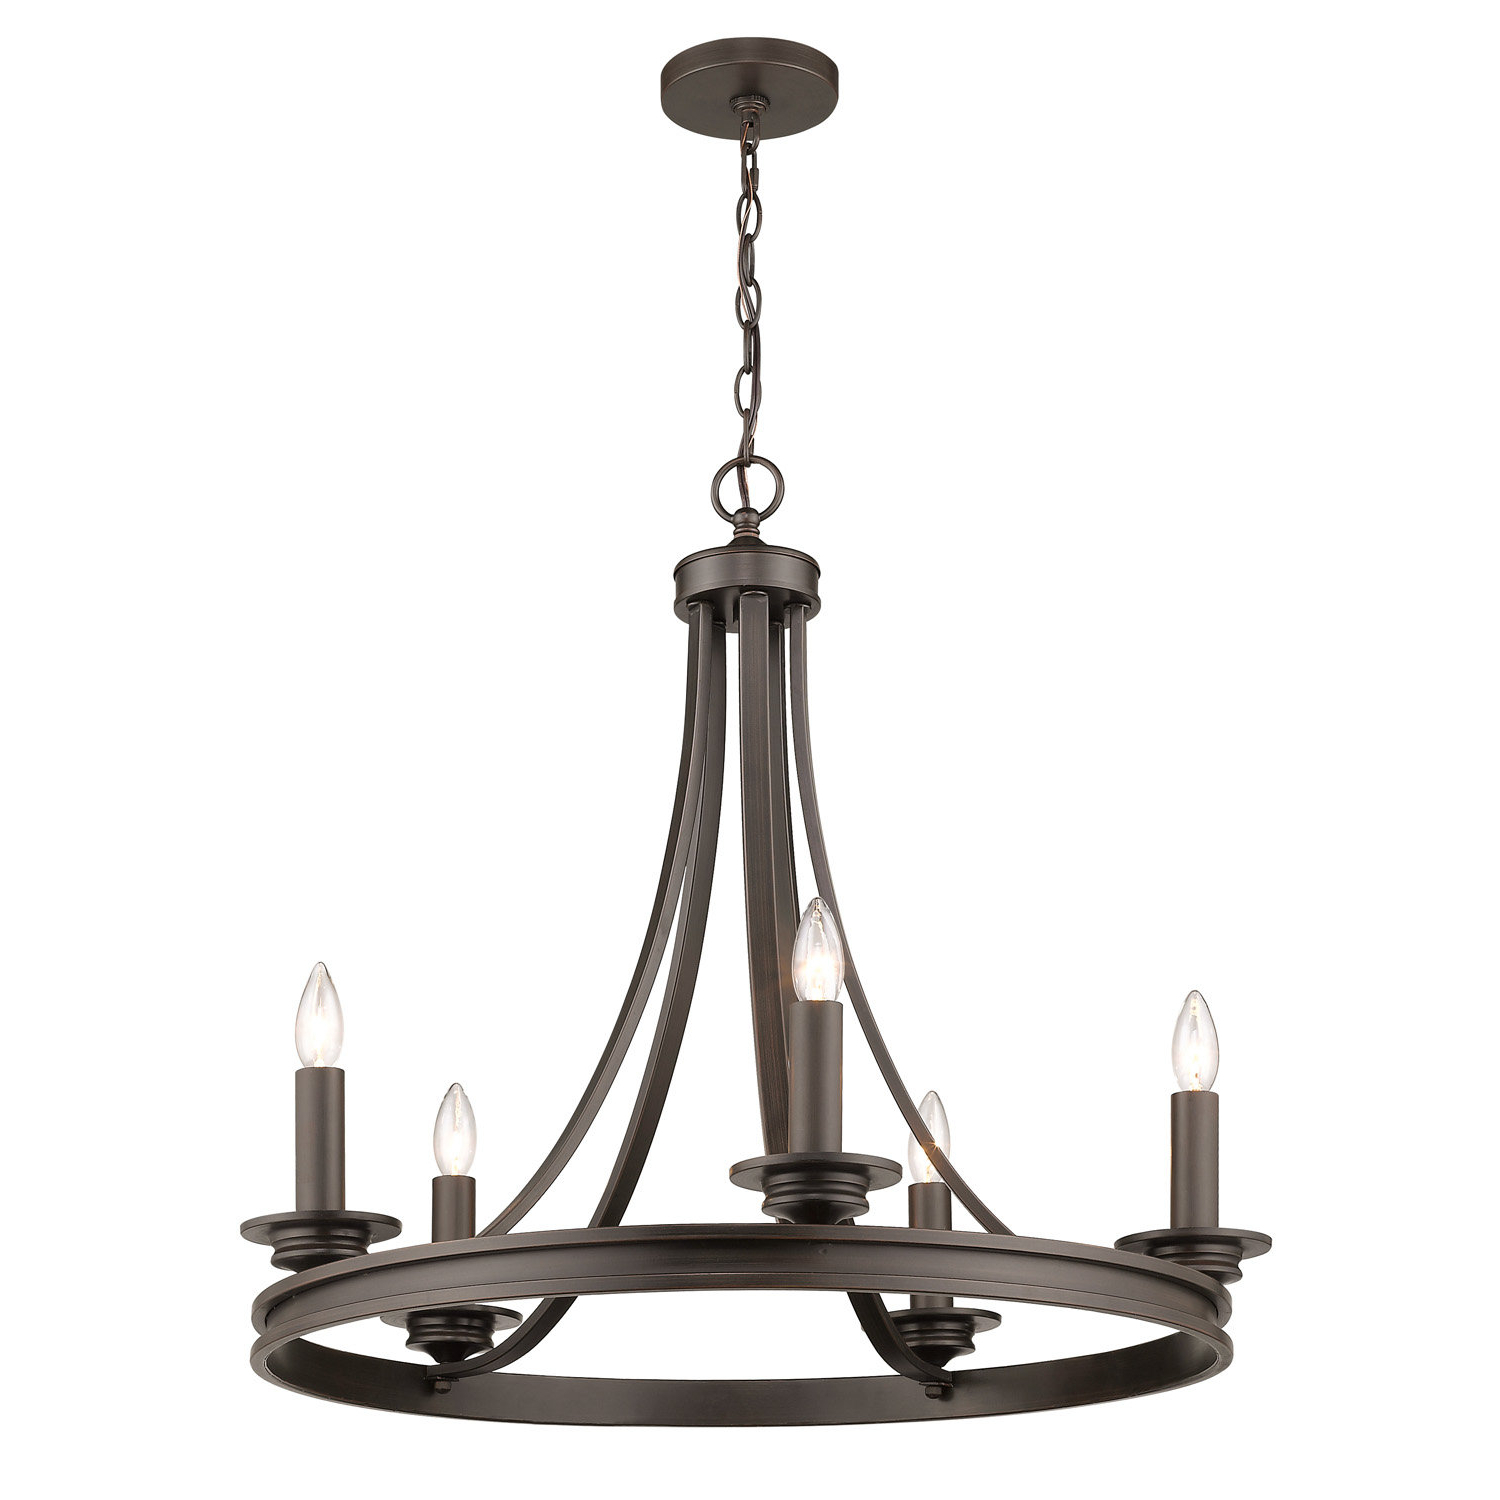 Most Current Janette 5 Light Wagon Wheel Chandeliers Intended For Pavon 5 Light Wagon Wheel Chandelier (View 12 of 20)